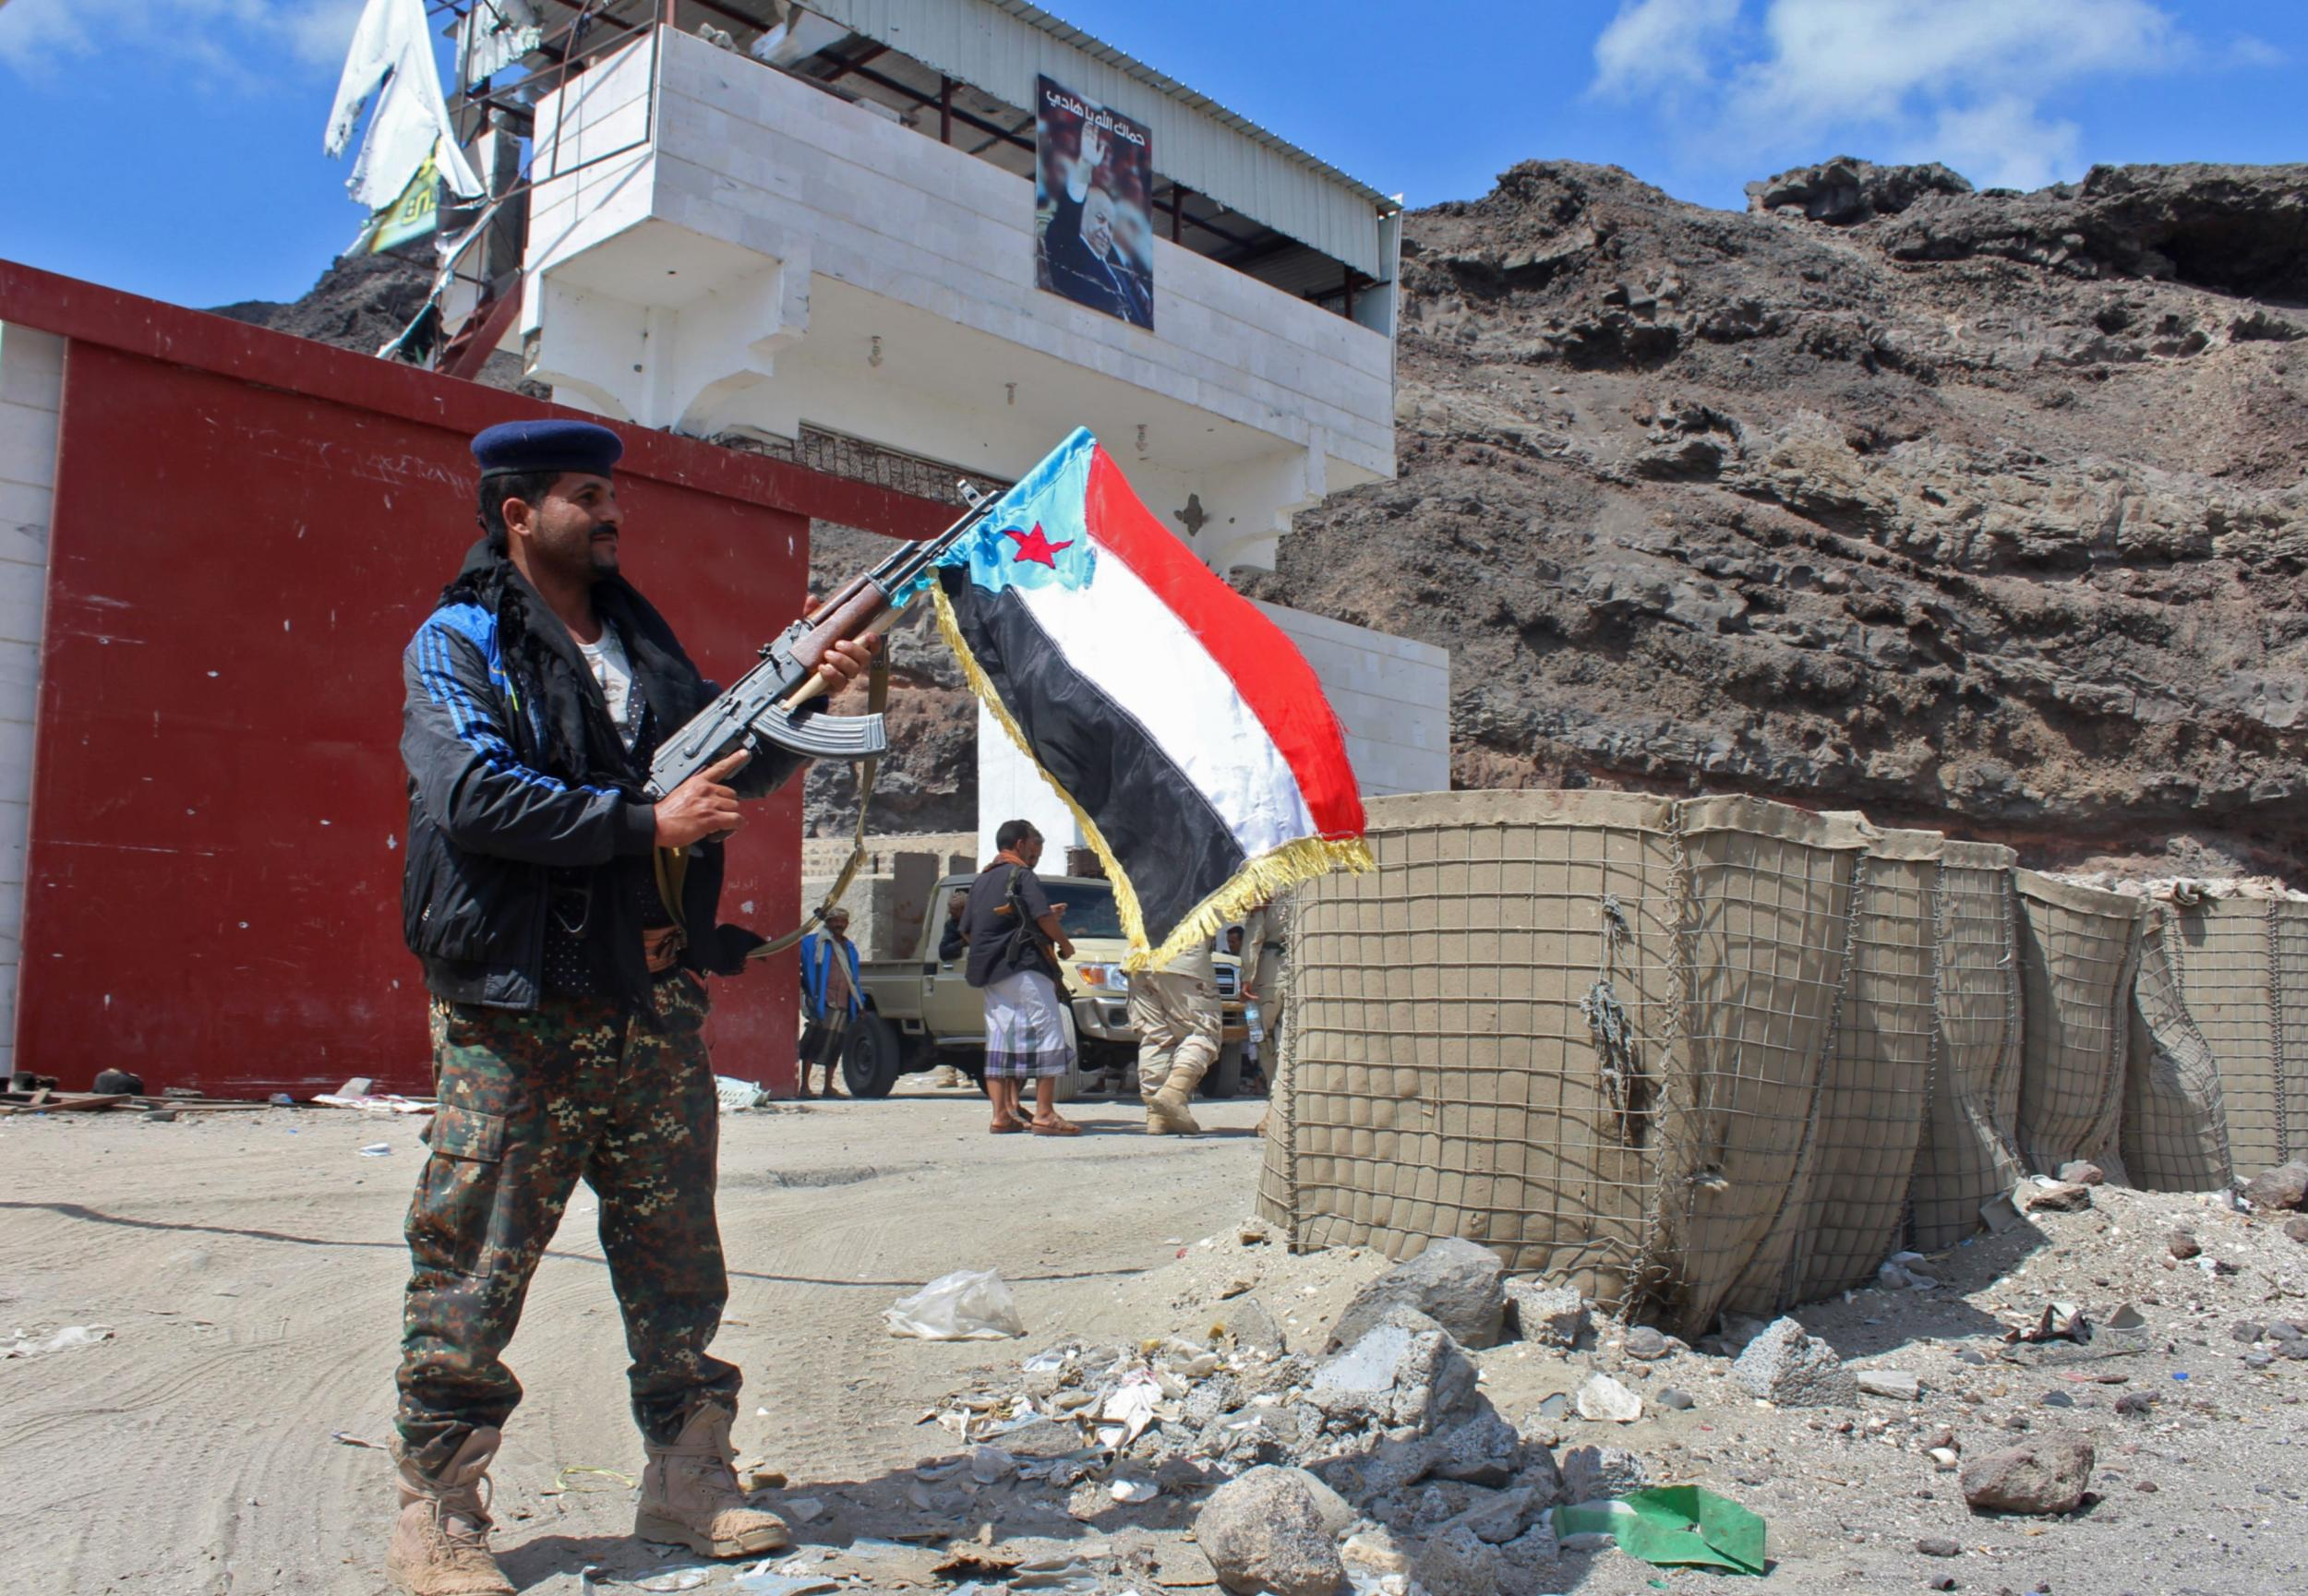 yemen latest news breaking stories and comment the independent